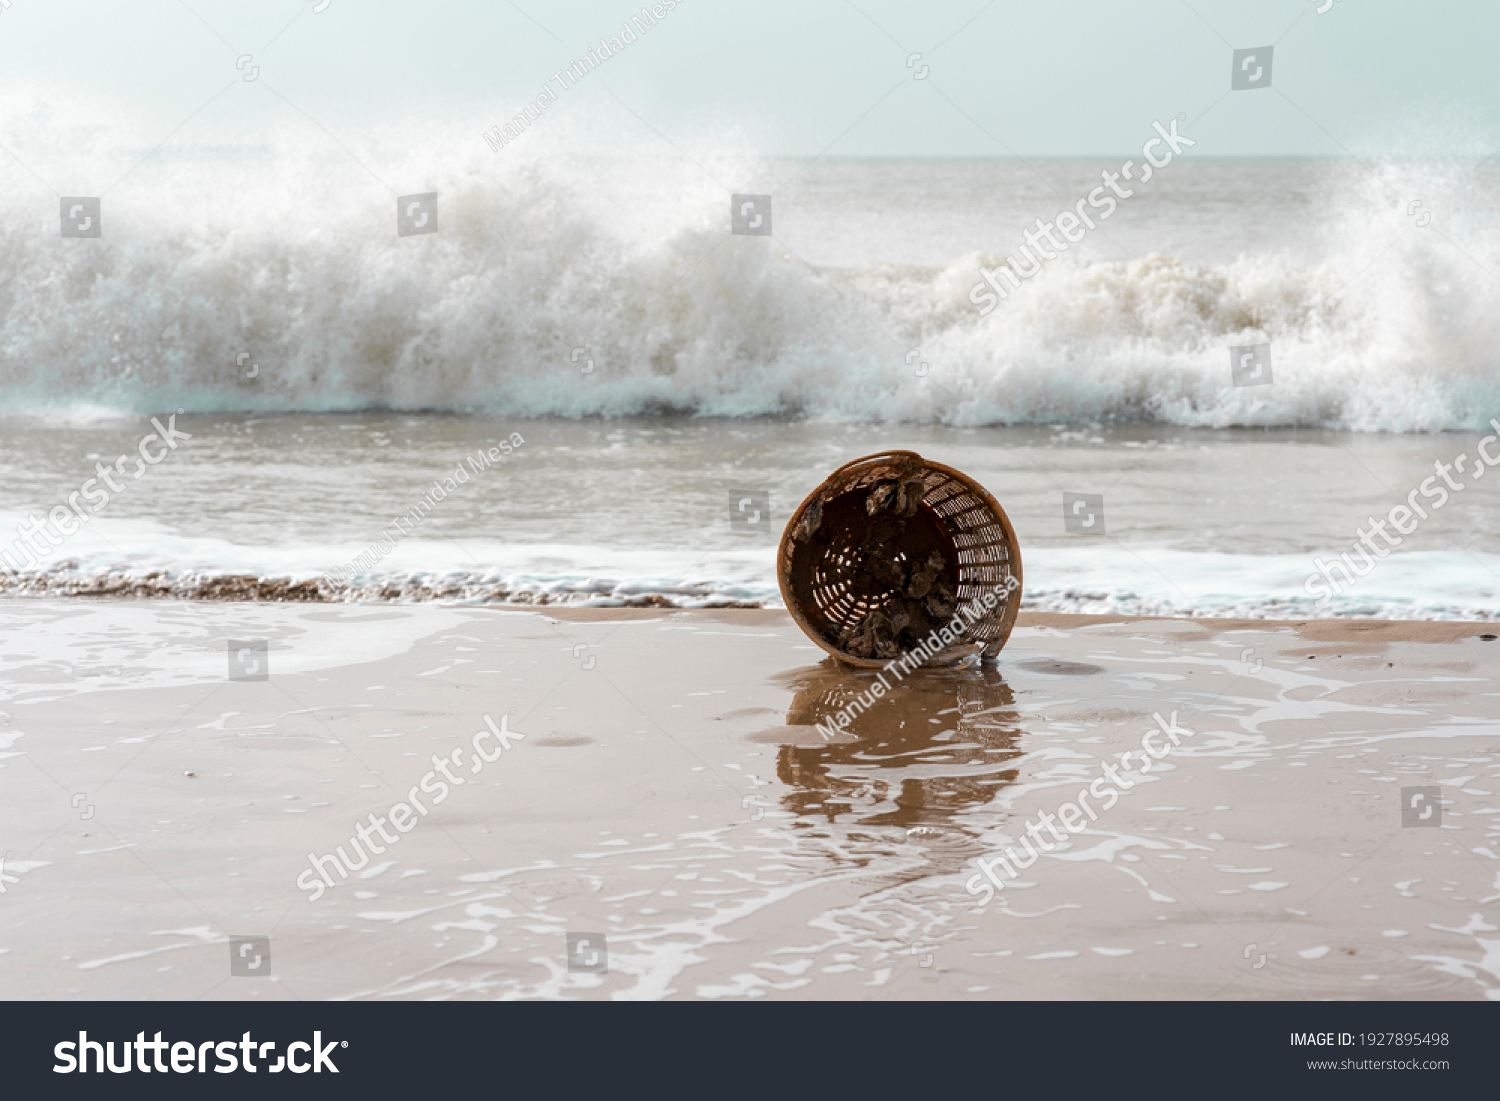 stock-photo-old-plastic-basket-that-has-